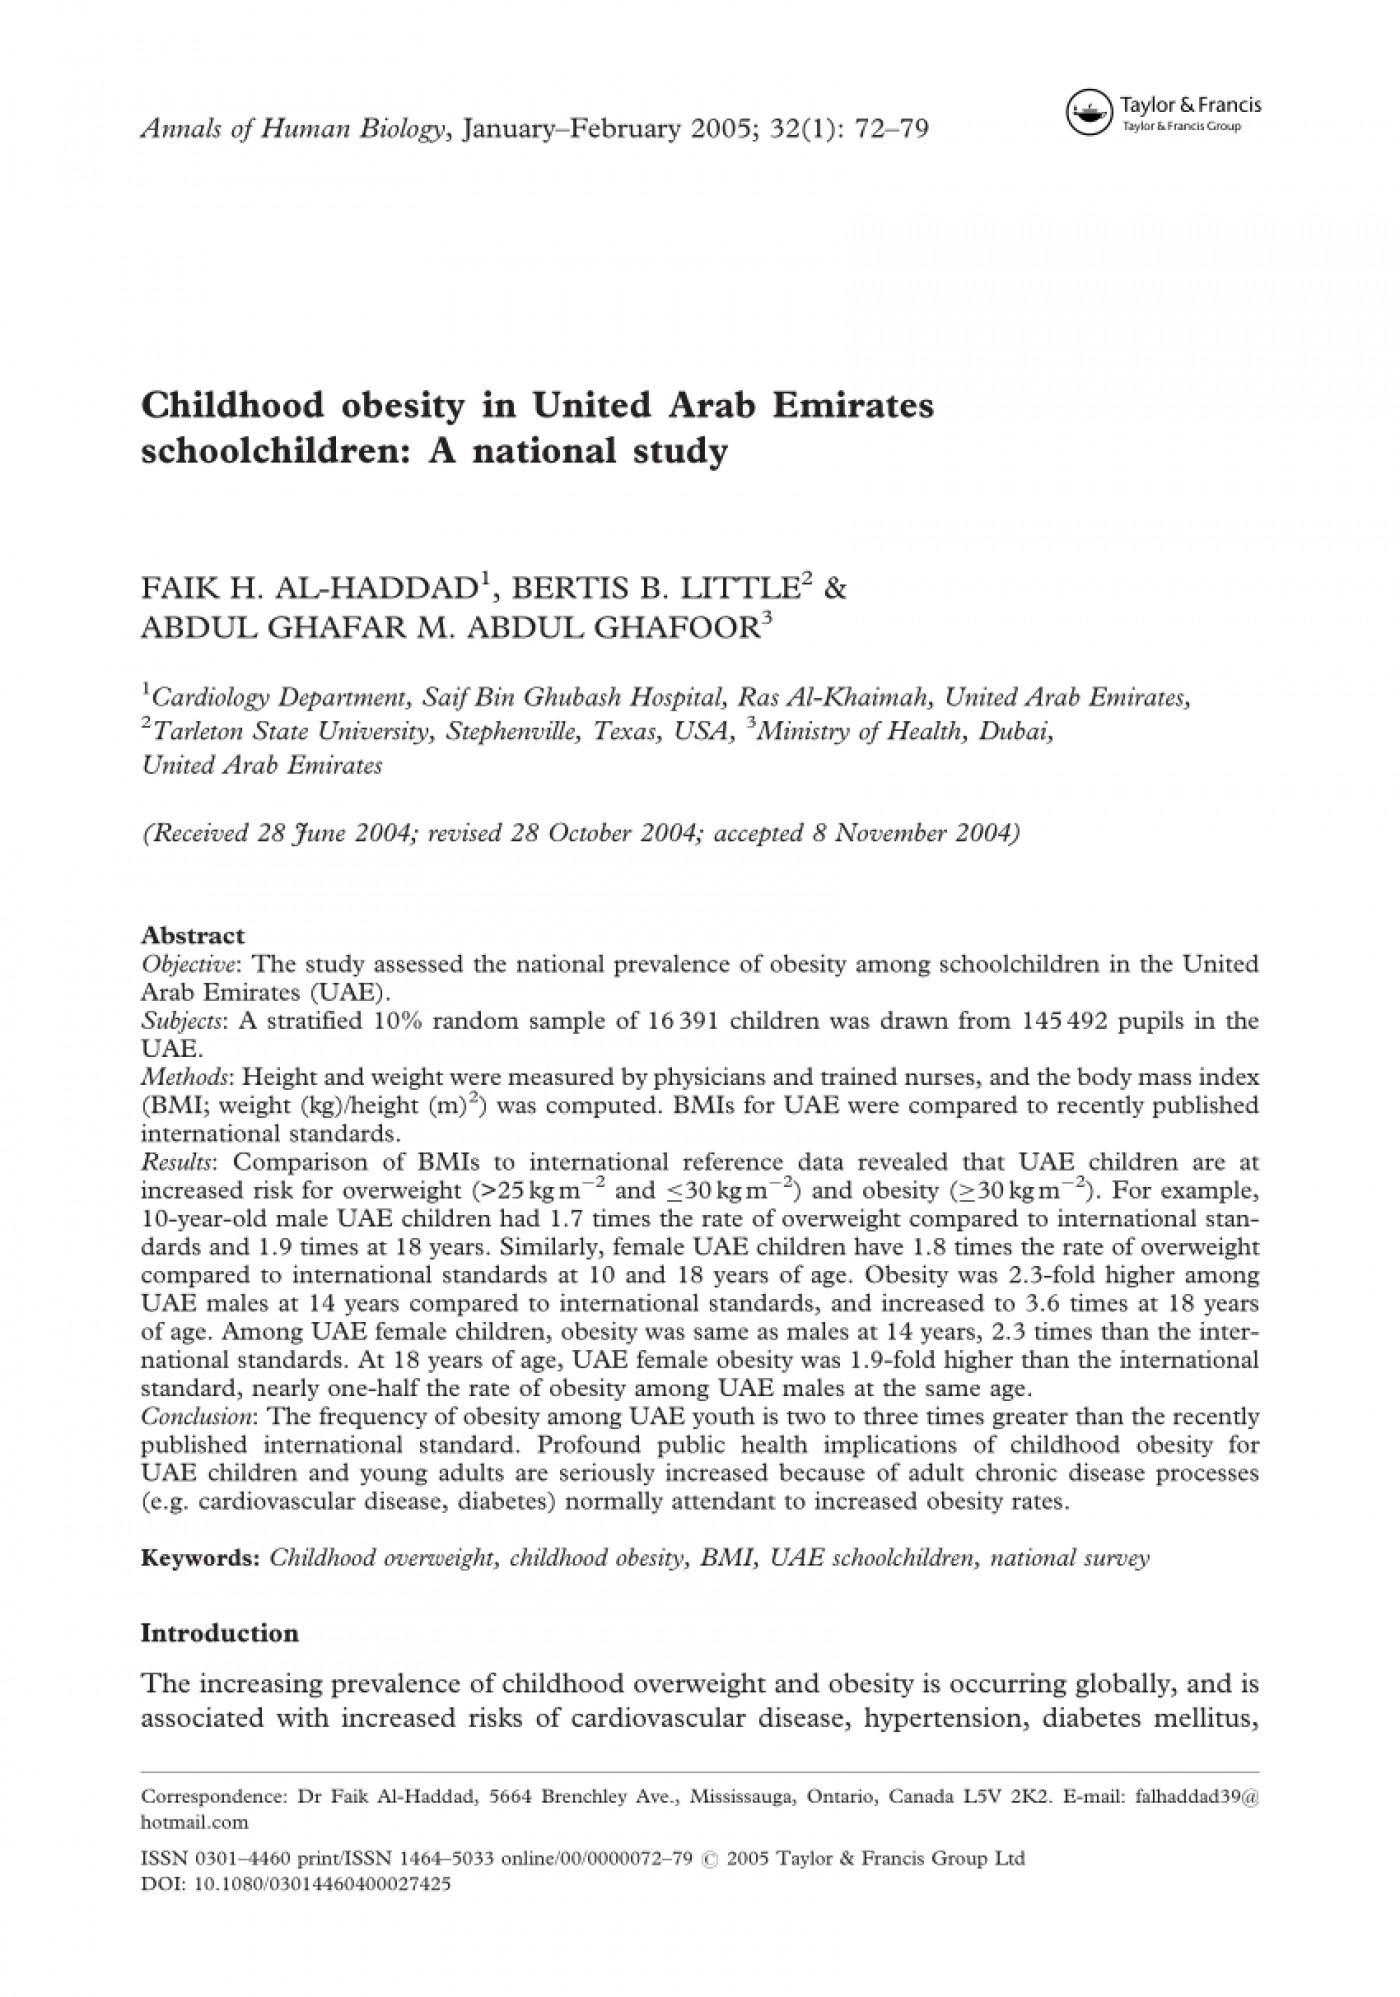 017 Largepreview Childhood Obesity Research Paper Frightening Introduction 1400